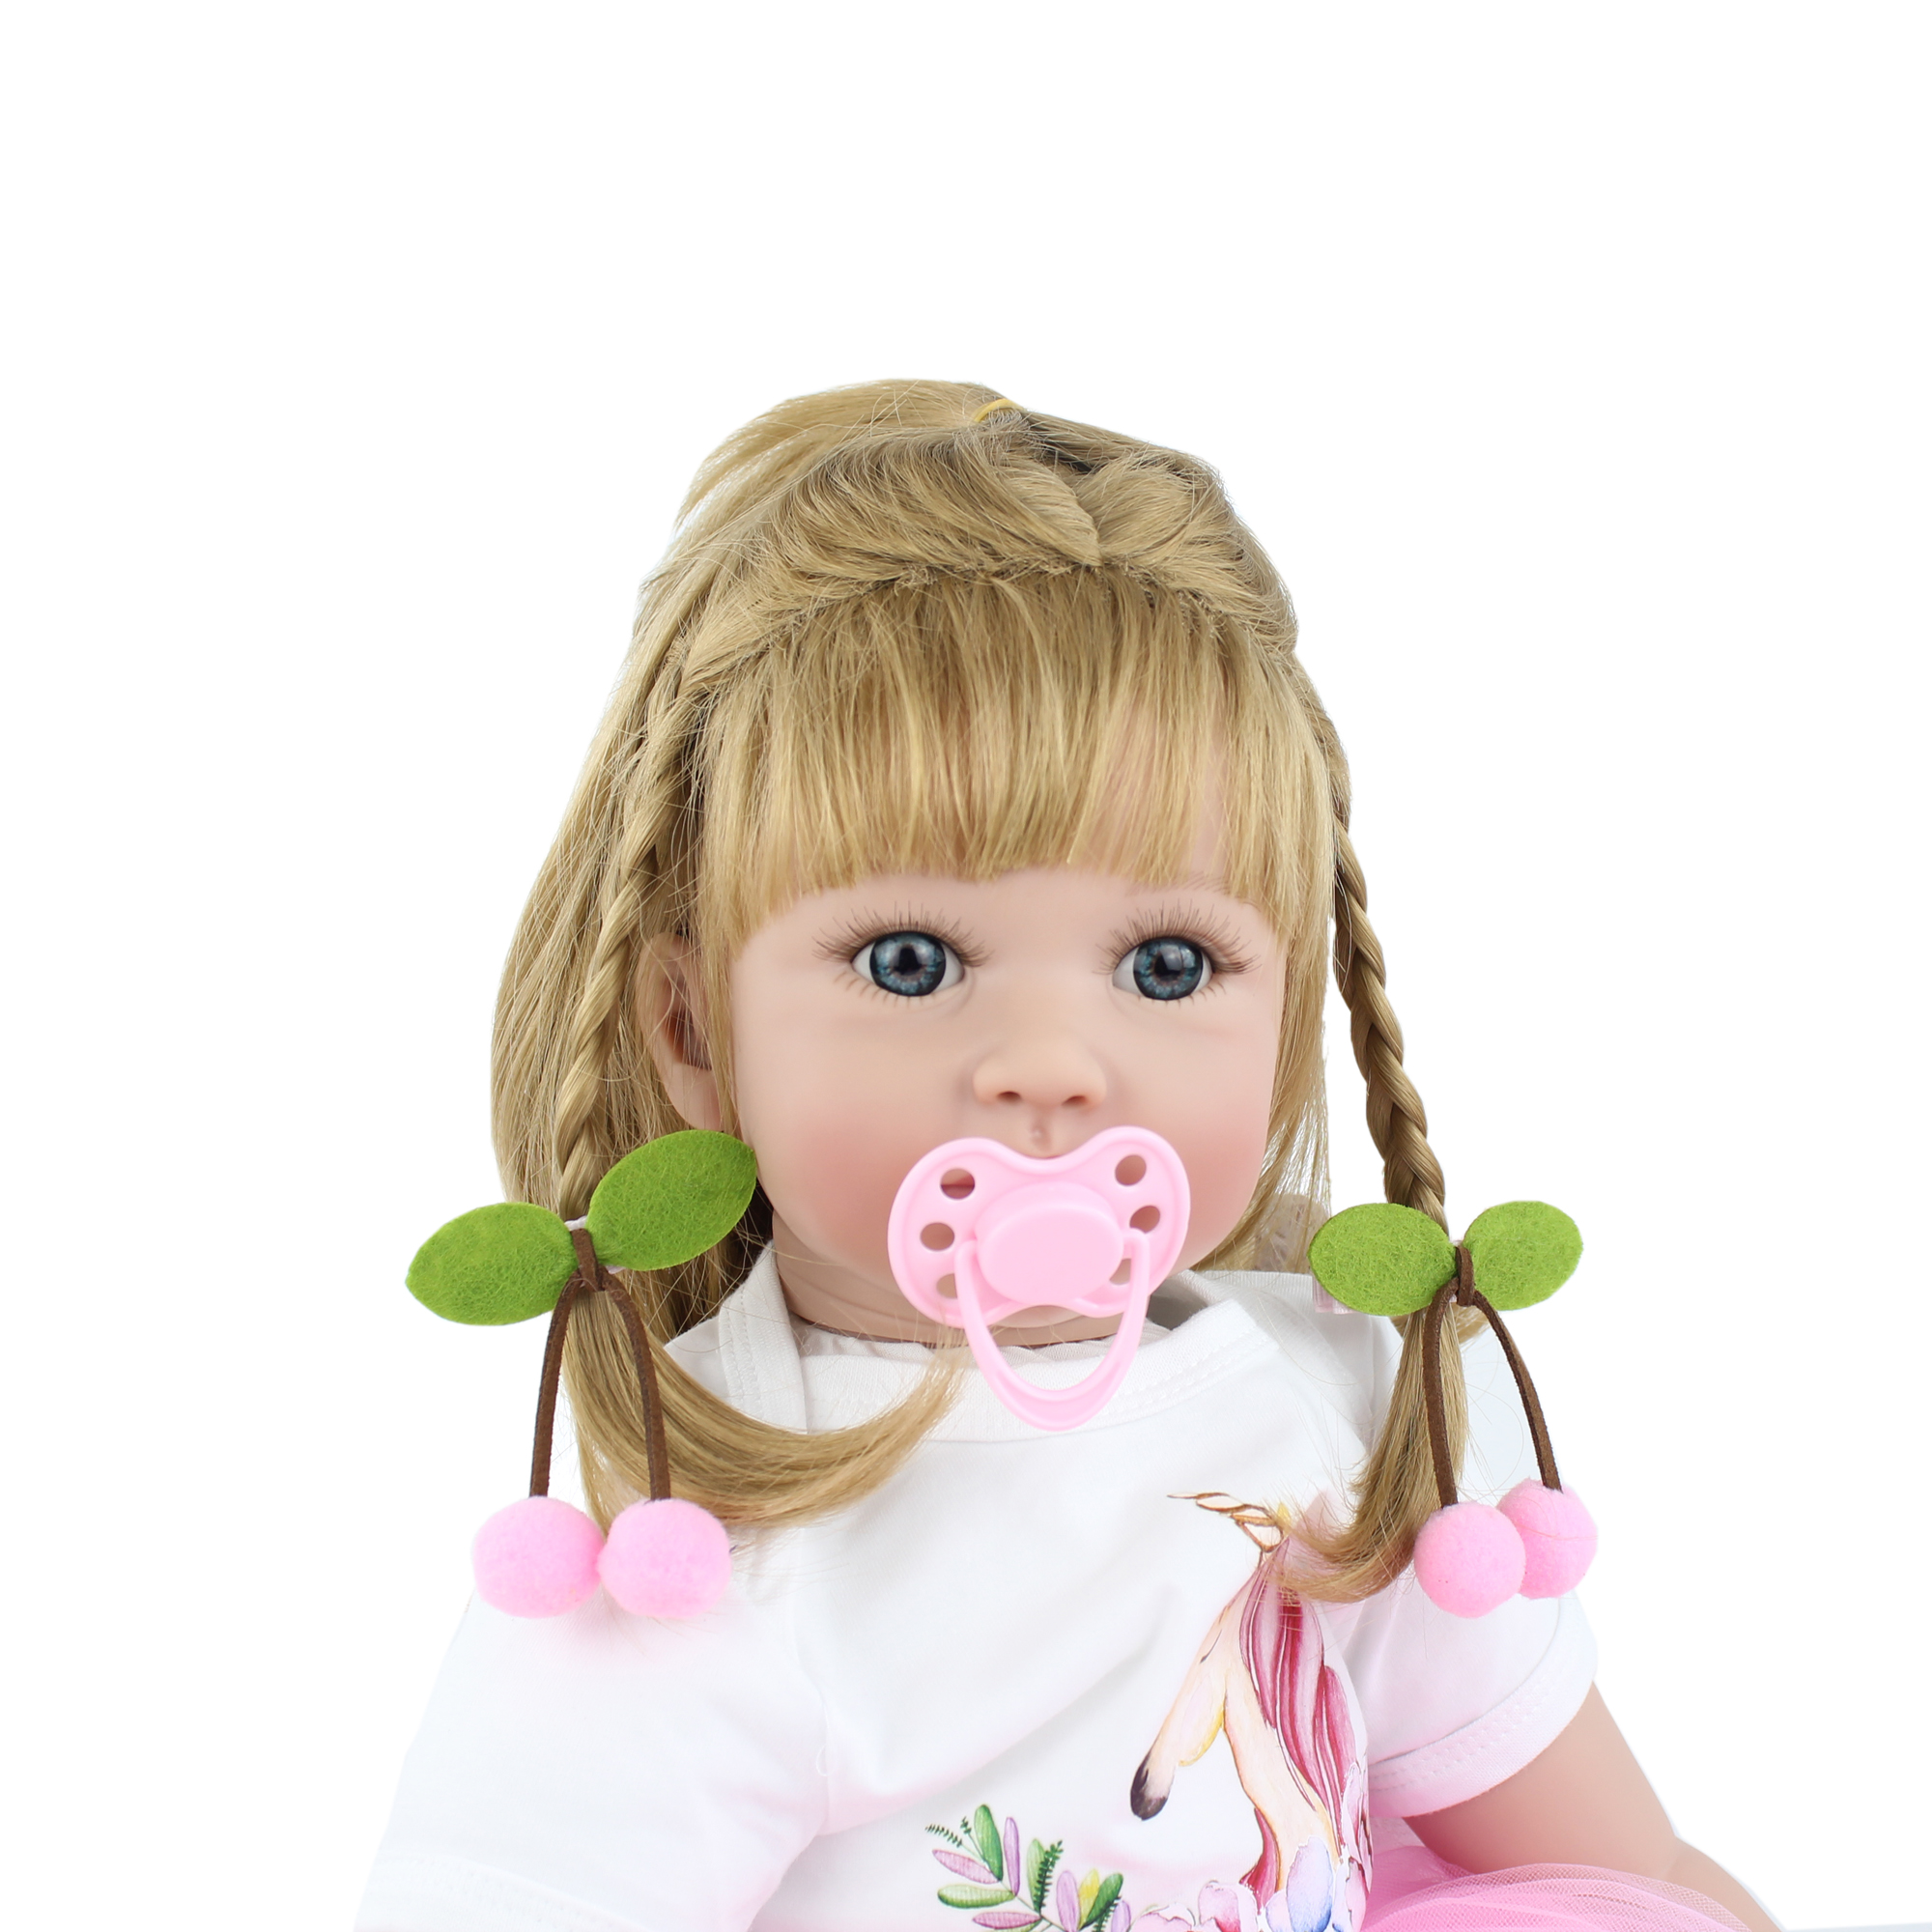 Reborn Babies Doll Toys For Girl Pink Dress Blonde Princess